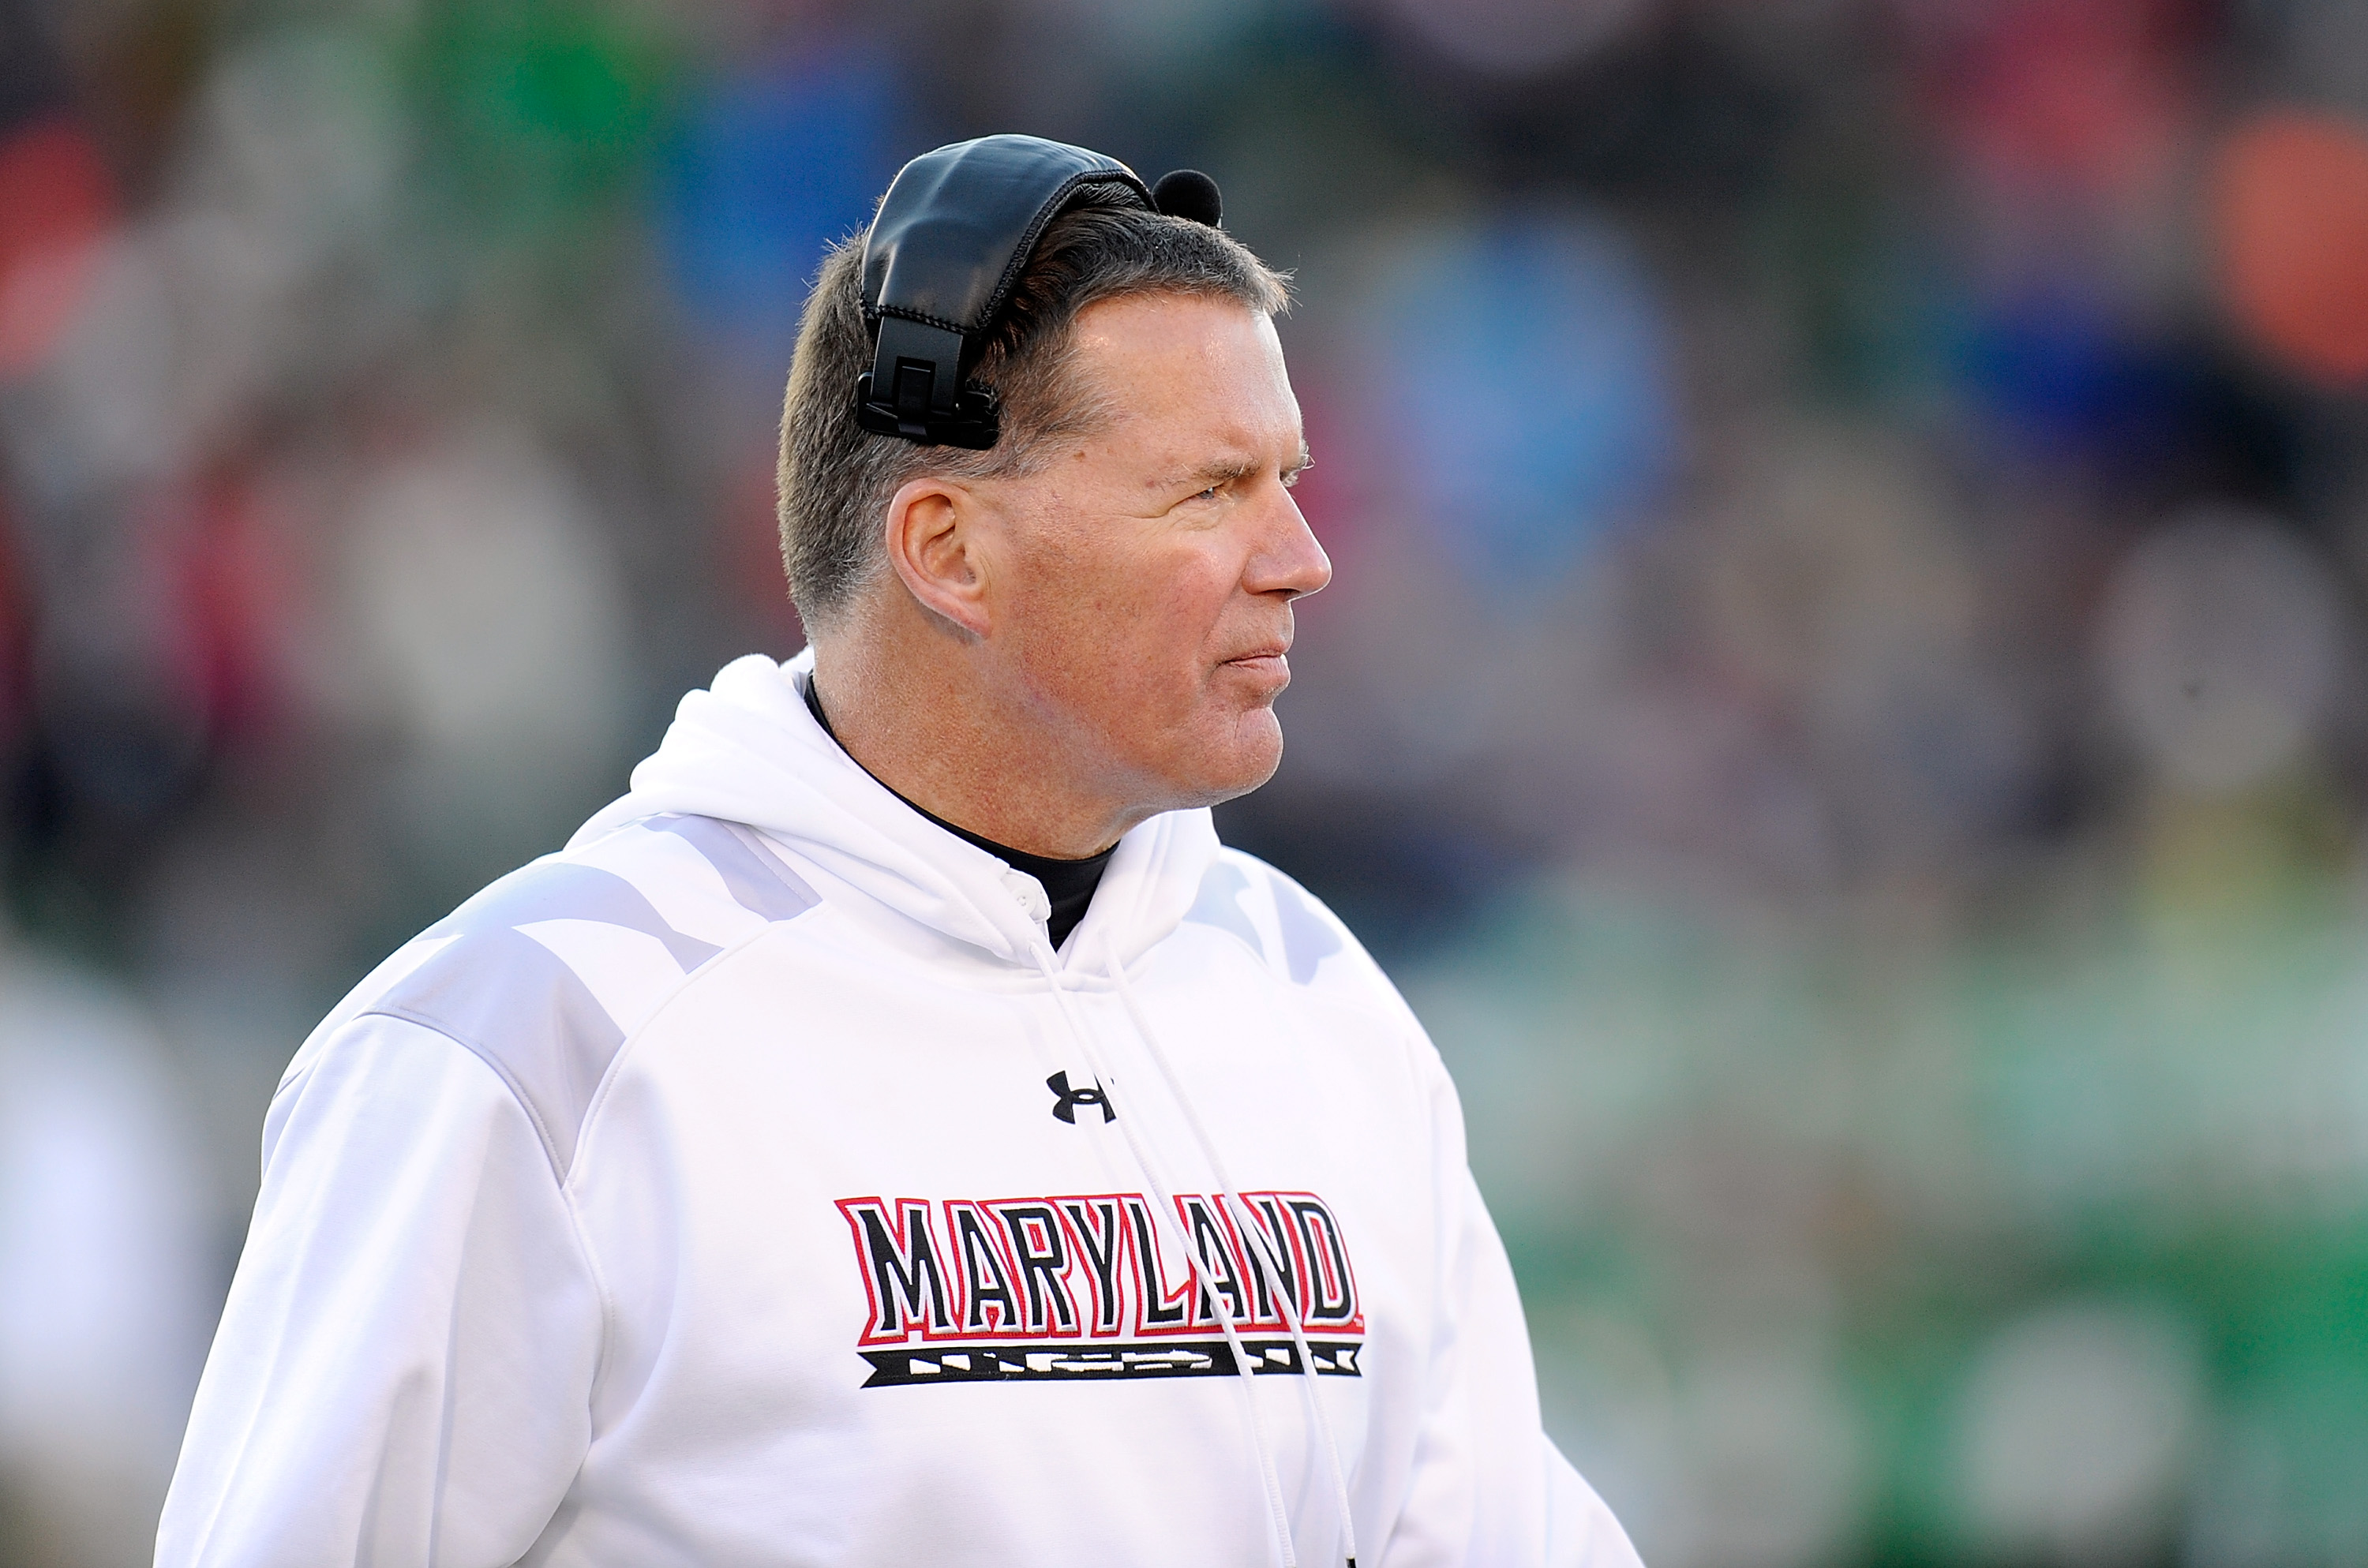 Head coach Randy Edsall of the Maryland Terrapins watches the game against the Marshall Herd during the 2013 Military Bowl at Navy-Marine Corps Memorial Stadium on December 27, 2013.